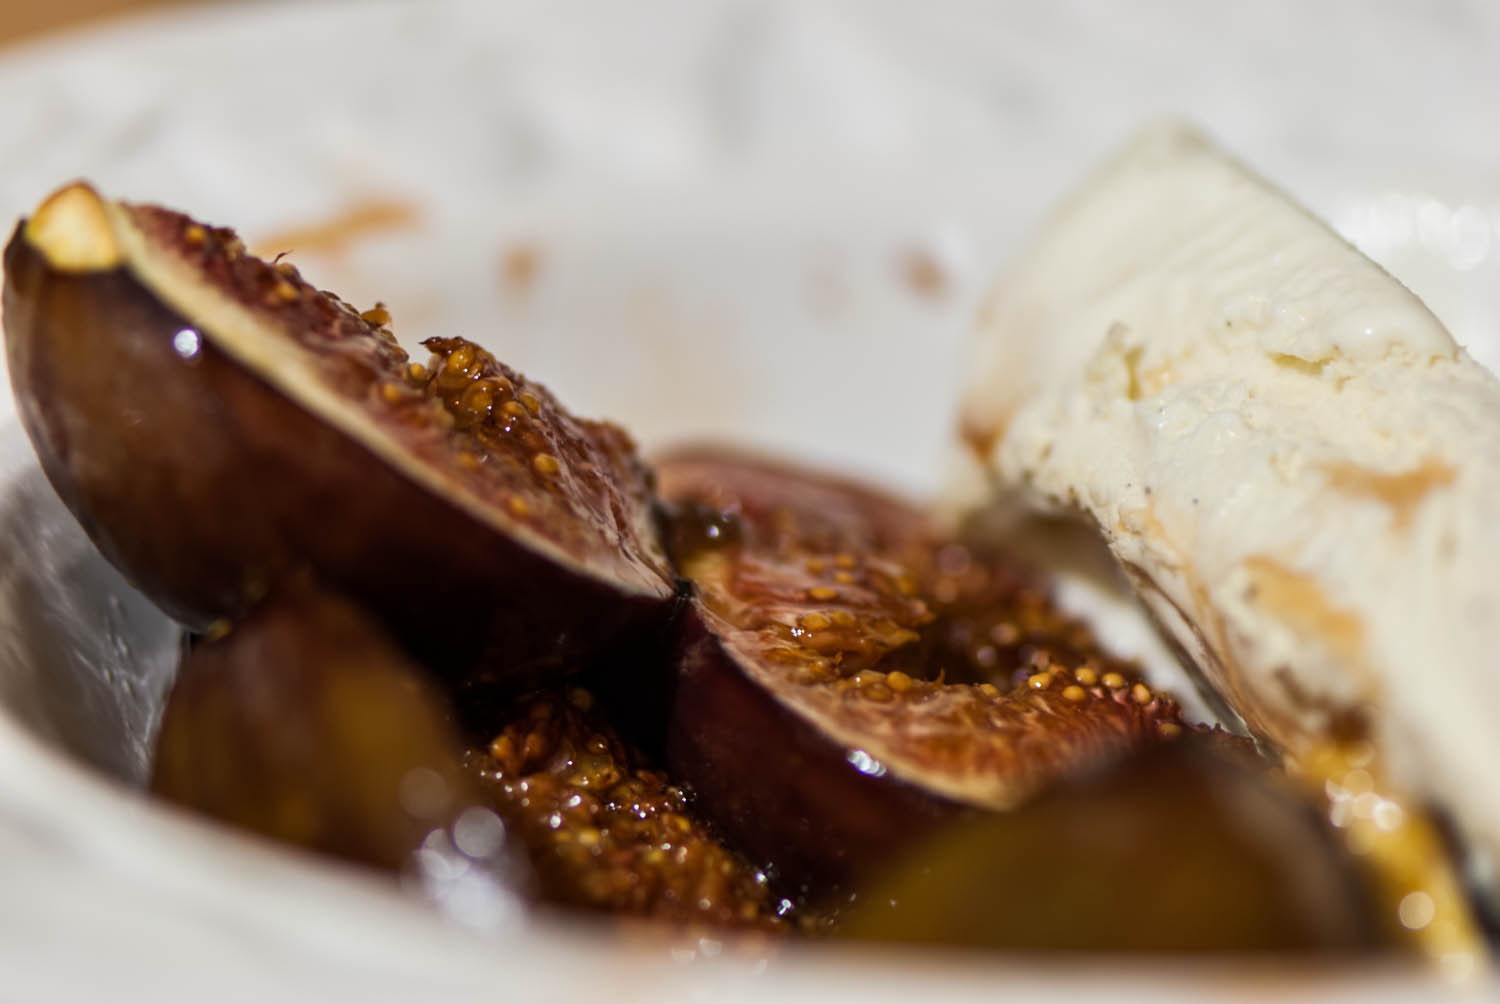 Figs with Muscovado sugar and Vanilla Ice Cream